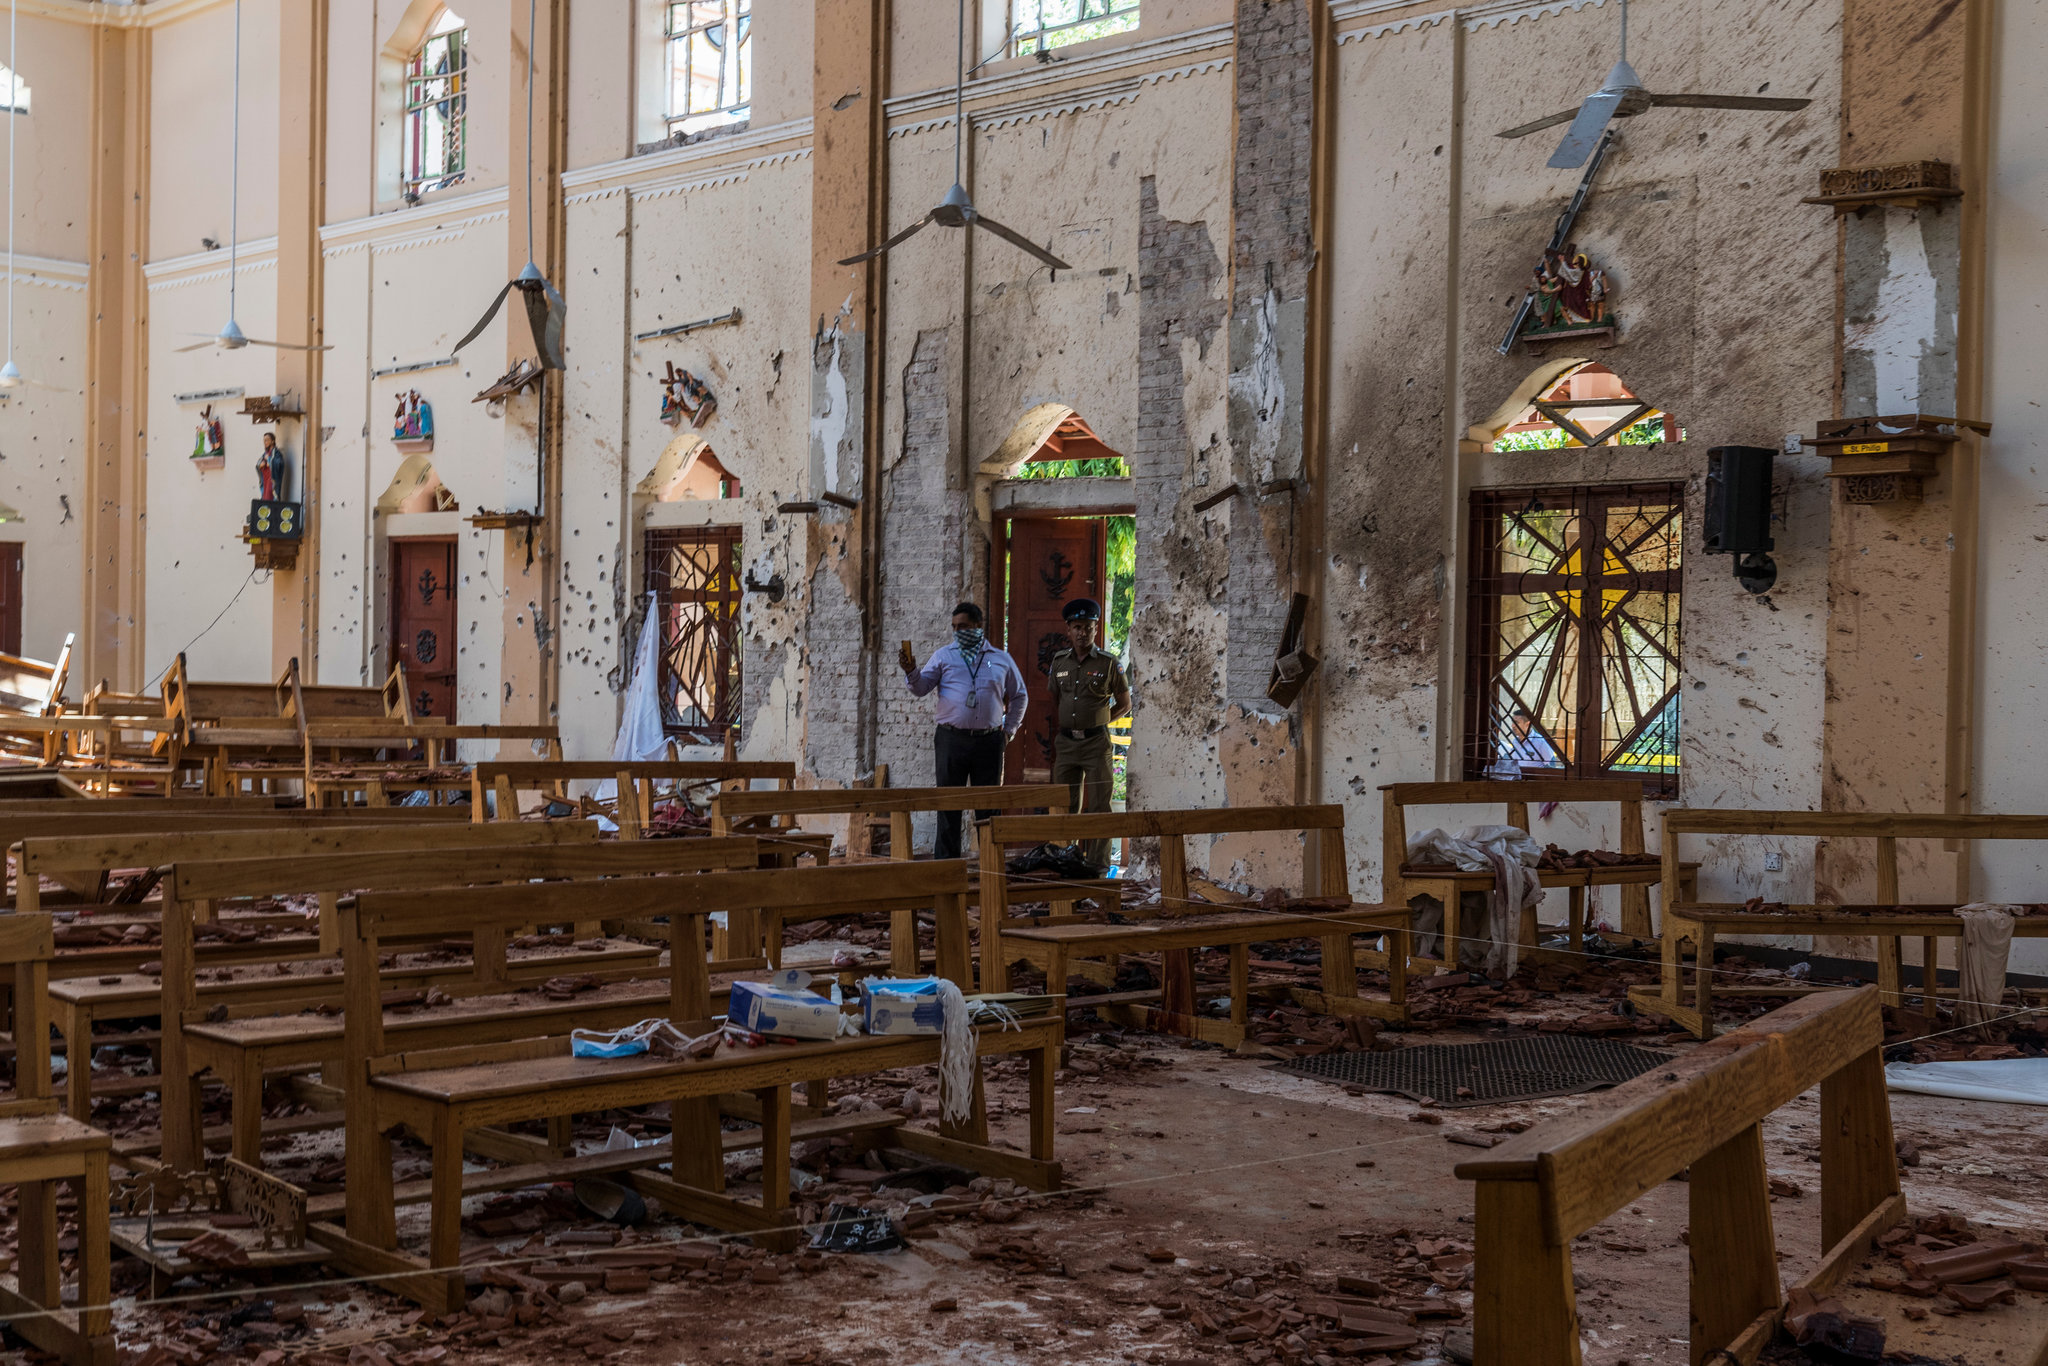 Surveying the damage at St. Sebastians Church in Negombo on Monday. Credit Adam Dean for The New York Times